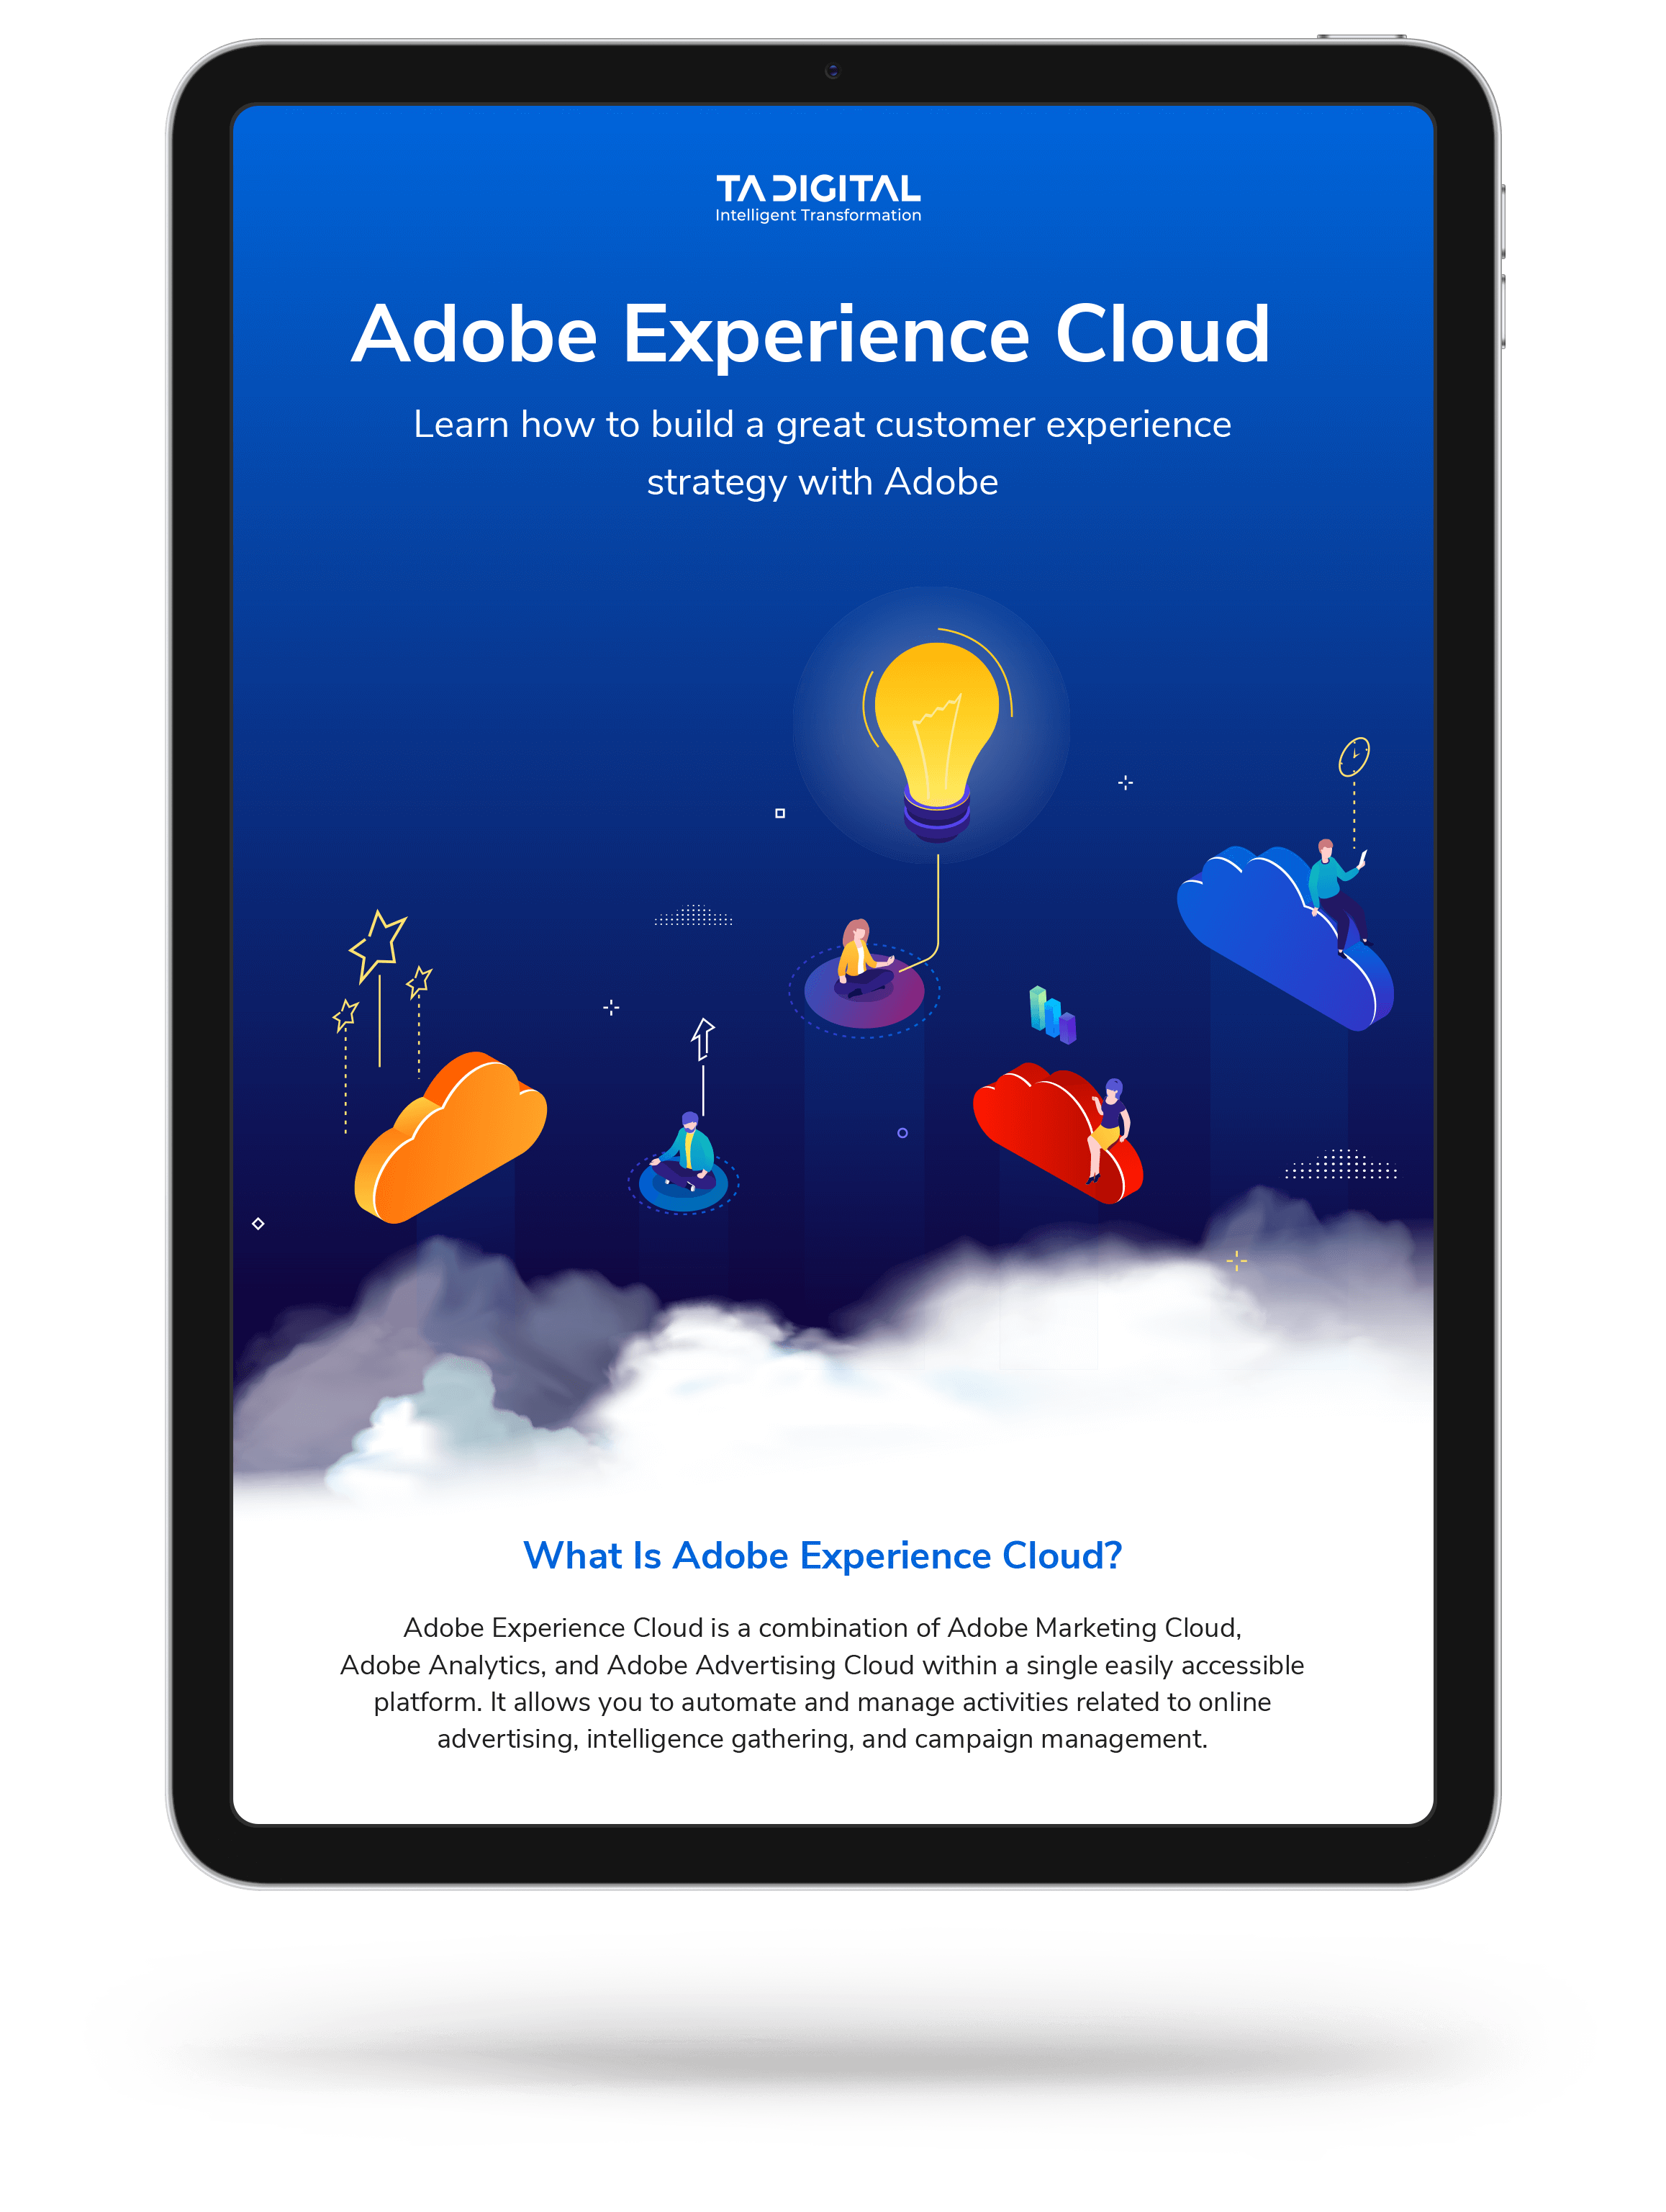 Adobe experience cloud Infographic